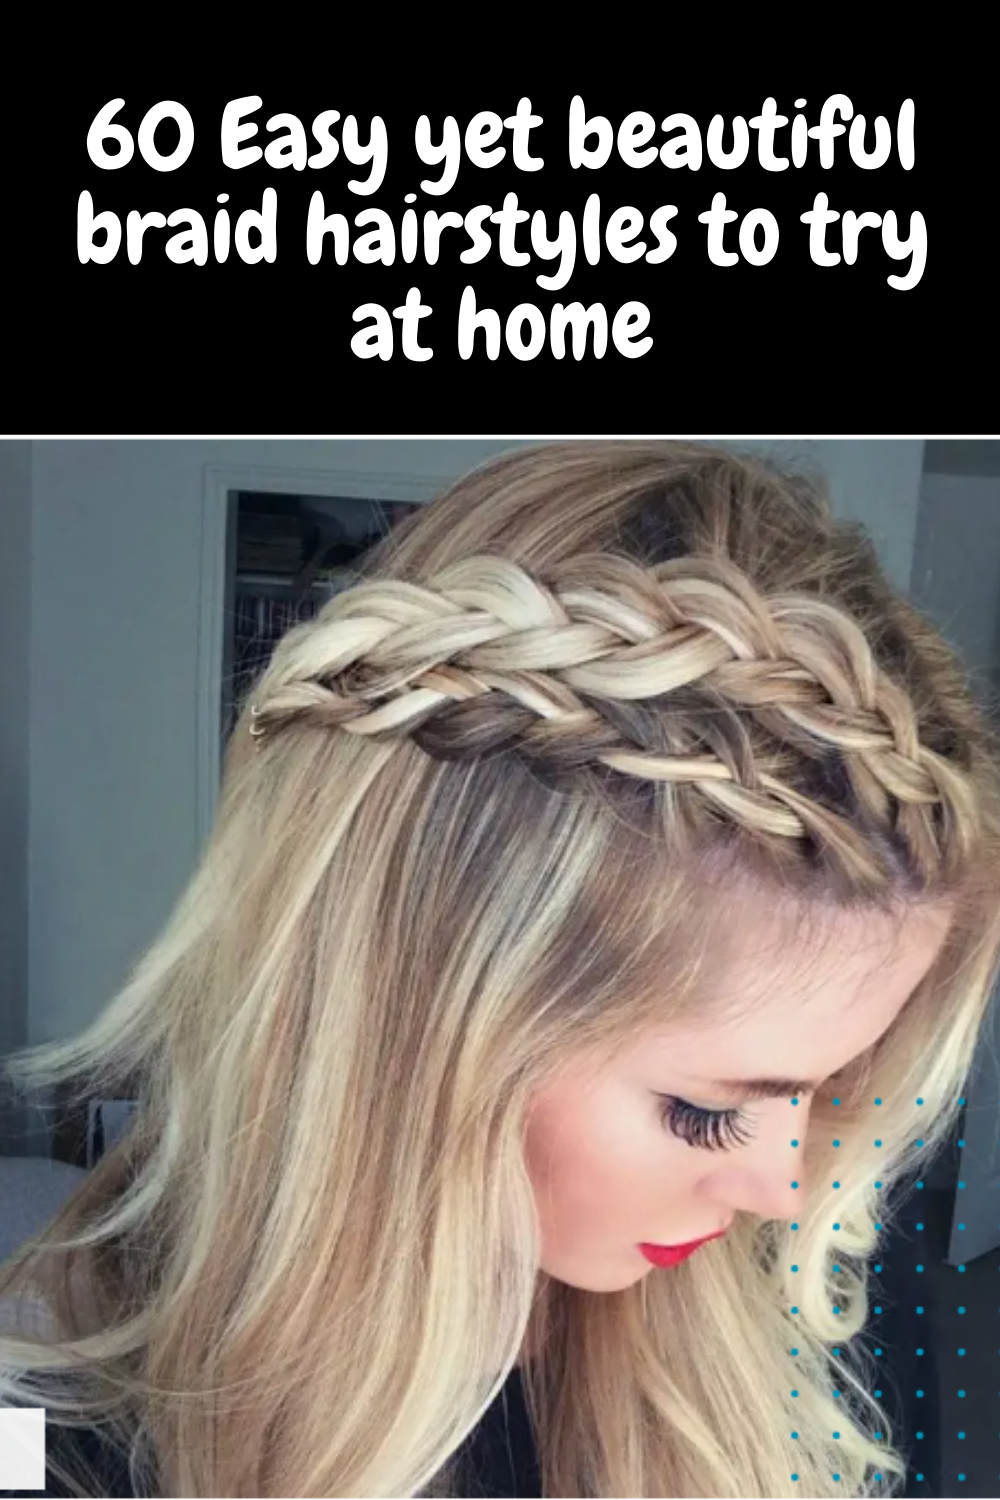 60 Easy Yet Beautiful Braid Hairstyles To Try At Home In 2020 Hair Styles Beautiful Braids Easy Braids